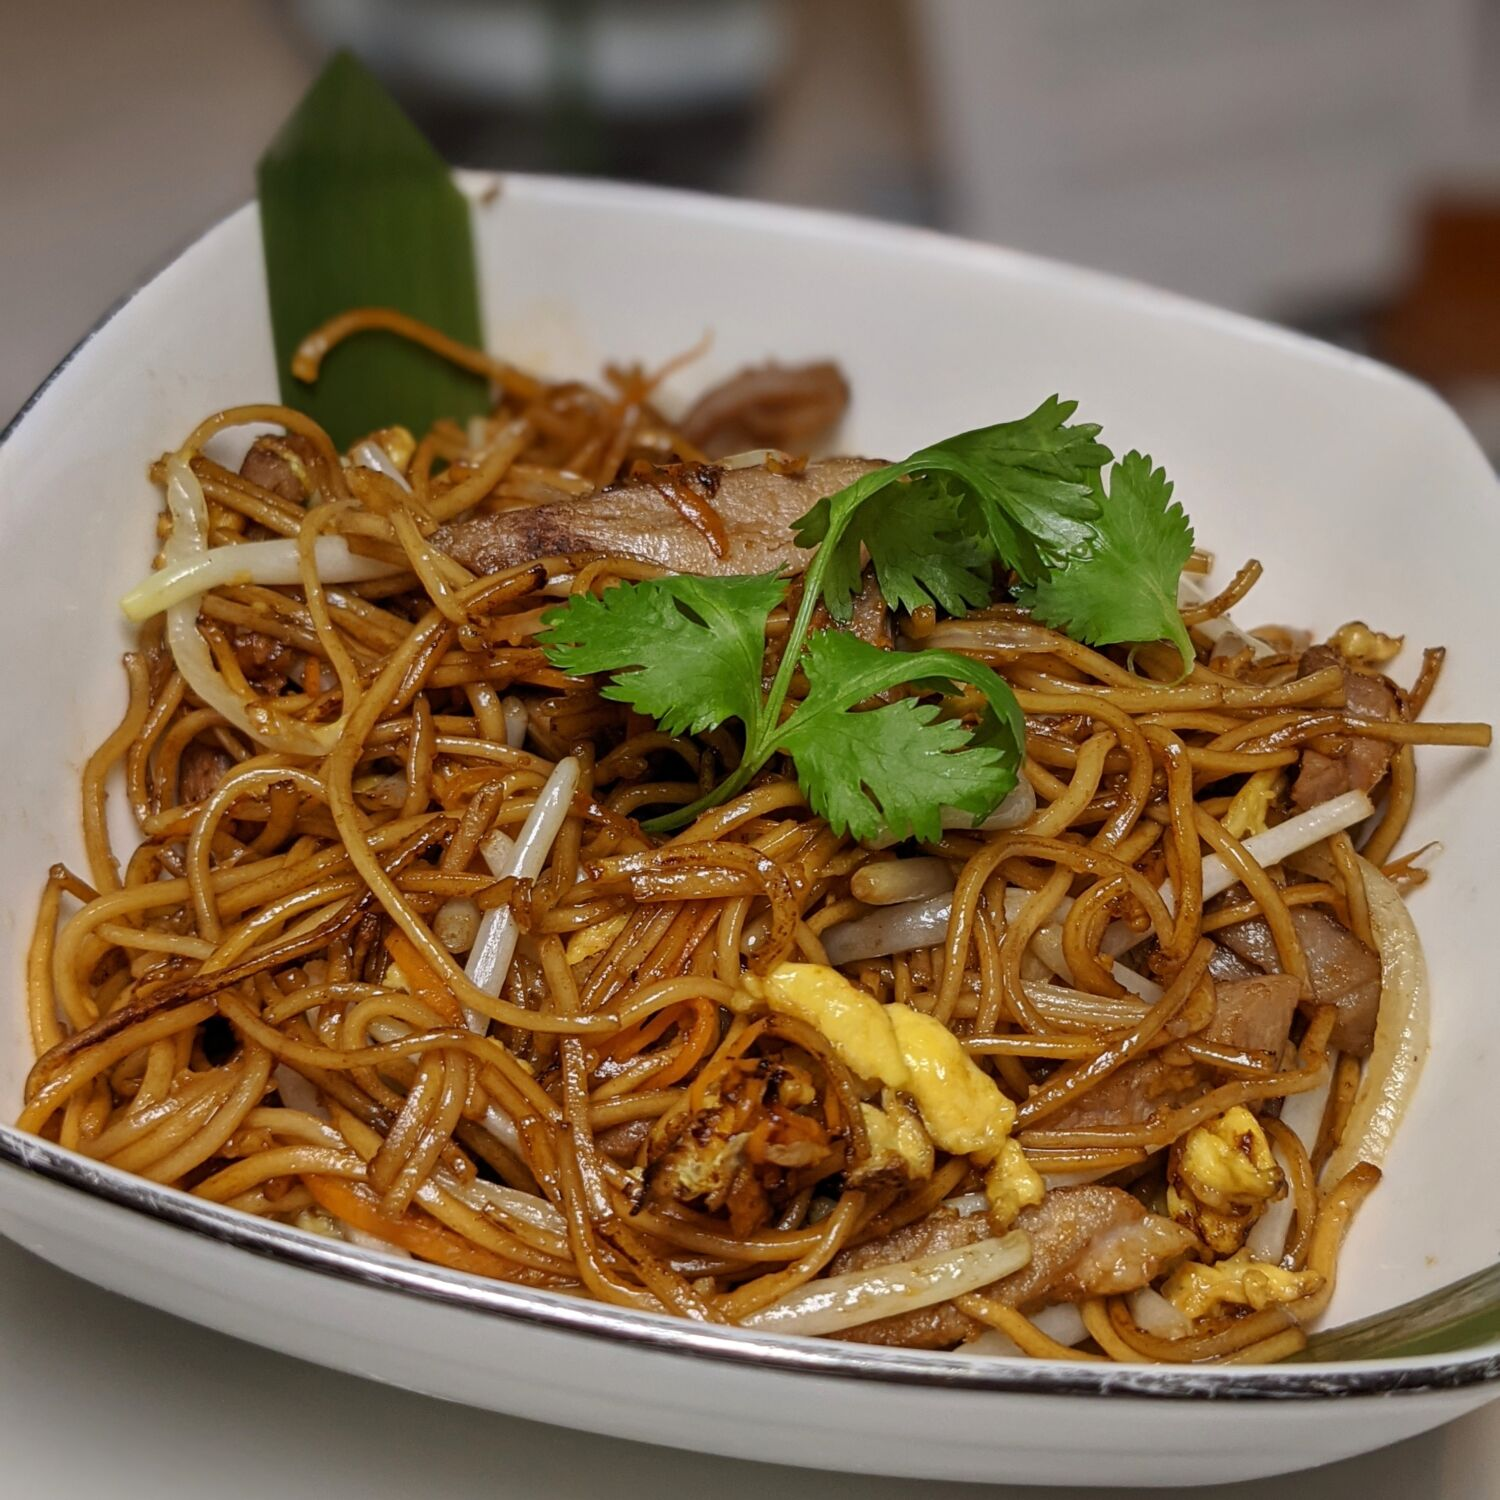 Capella Singapore Cassia Wok-fried Shredded Duck with Noodles